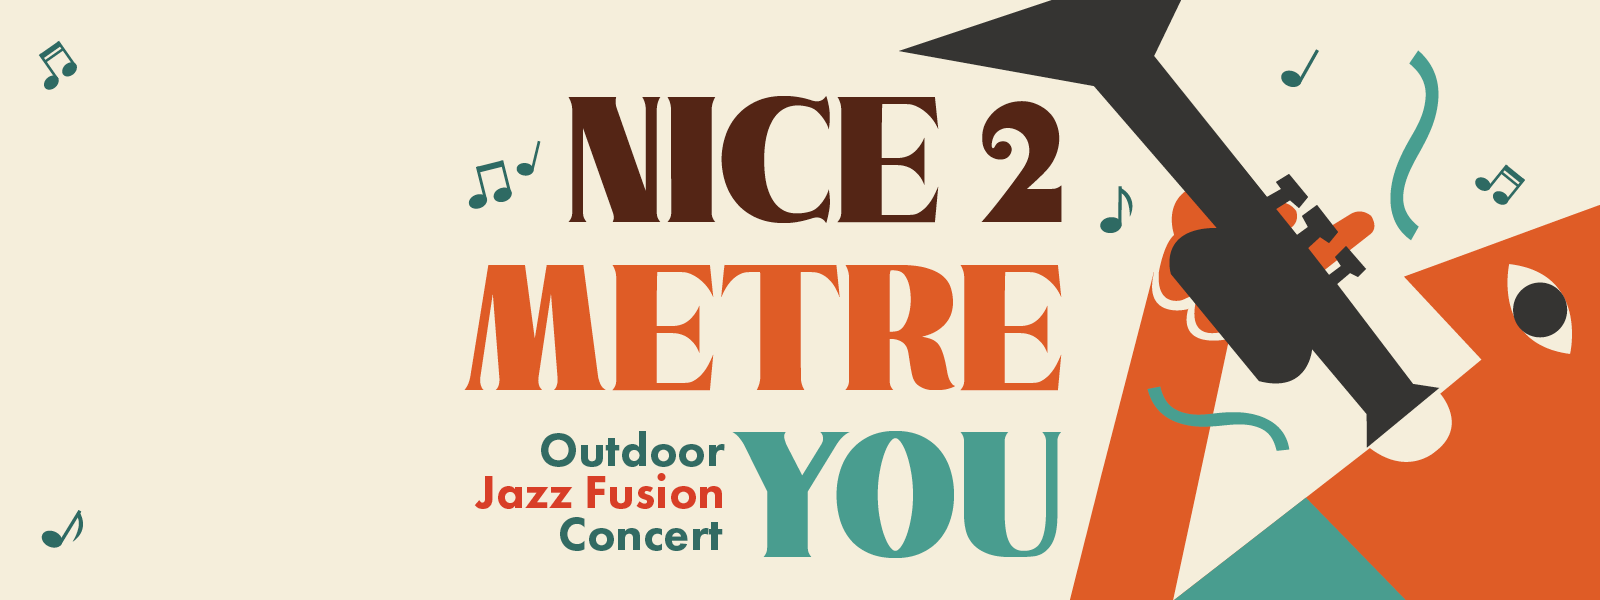 Nice 2 Metre You - Outdoor Concert